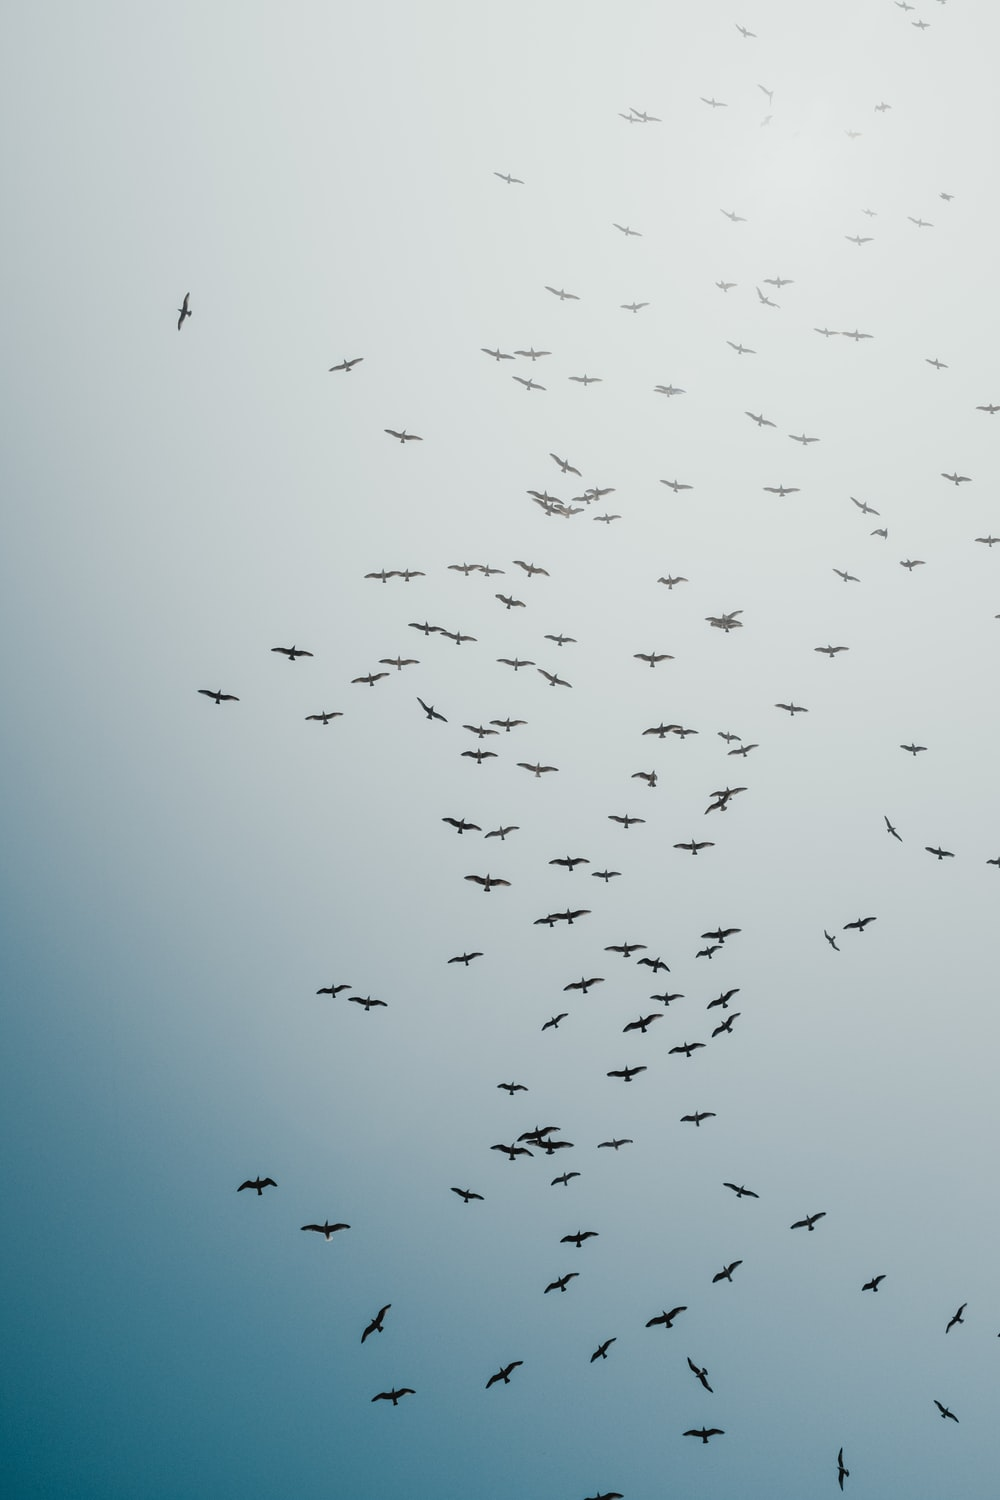 black birds flying during daytime